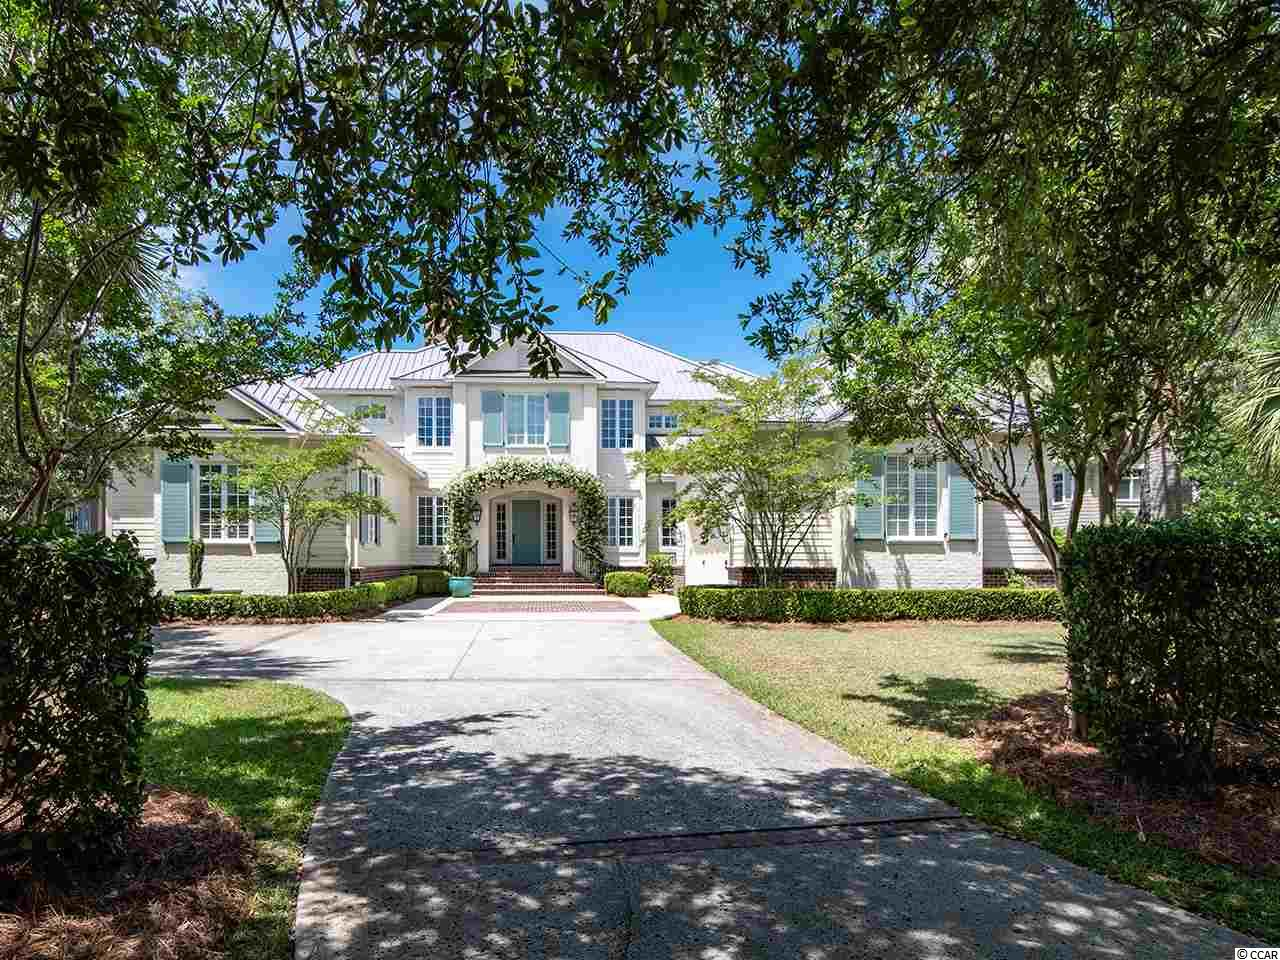 Outstanding North Inlet estuary views in the Ocean Green section of DeBordieu Colony.  6 bedrooms and 5.5 baths. Approximately 5000 heated sq. ft and 8200 sq. ft. Under roof. Features include: daily sunsets, media room, exercise room, 2 offices, 10' ceilings, Plantation shutters, 3 fireplaces, granite counters, 2 dishwashers, 2 clothes dryers, small pool, 2 huge screened porches. Oh yes - the views will take your breath away! DeBordieu Colony is an oceanfront residential community located just 5 miles south of Pawleys Island, South Carolina featuring private golf and tennis, saltwater creek access to the ocean, a 24/7 manned security gate, and unique luxury homes surrounded by thousands of acres of wildlife and nature preserves. People who have been here say there will never be a place as remarkable as DeBordieu. Come see for yourself!